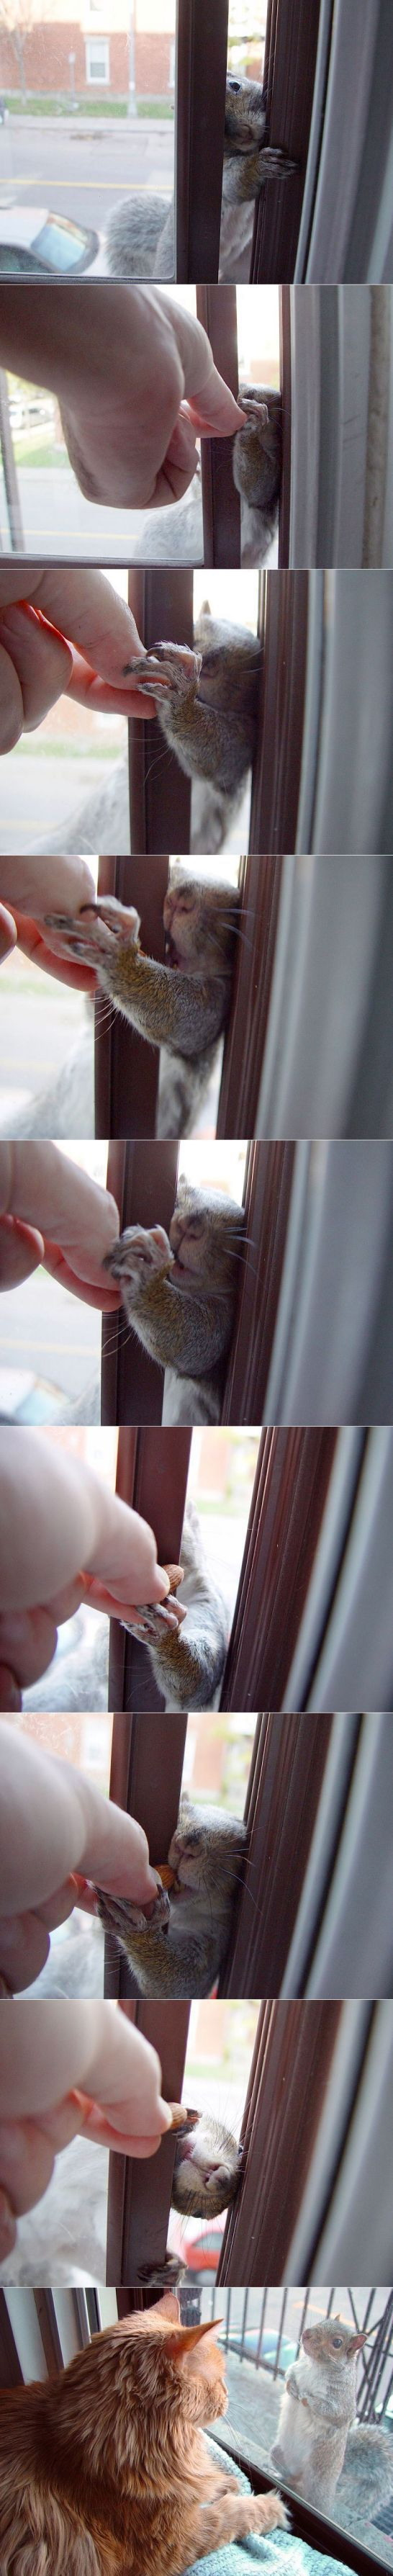 Cute squirrel at the window